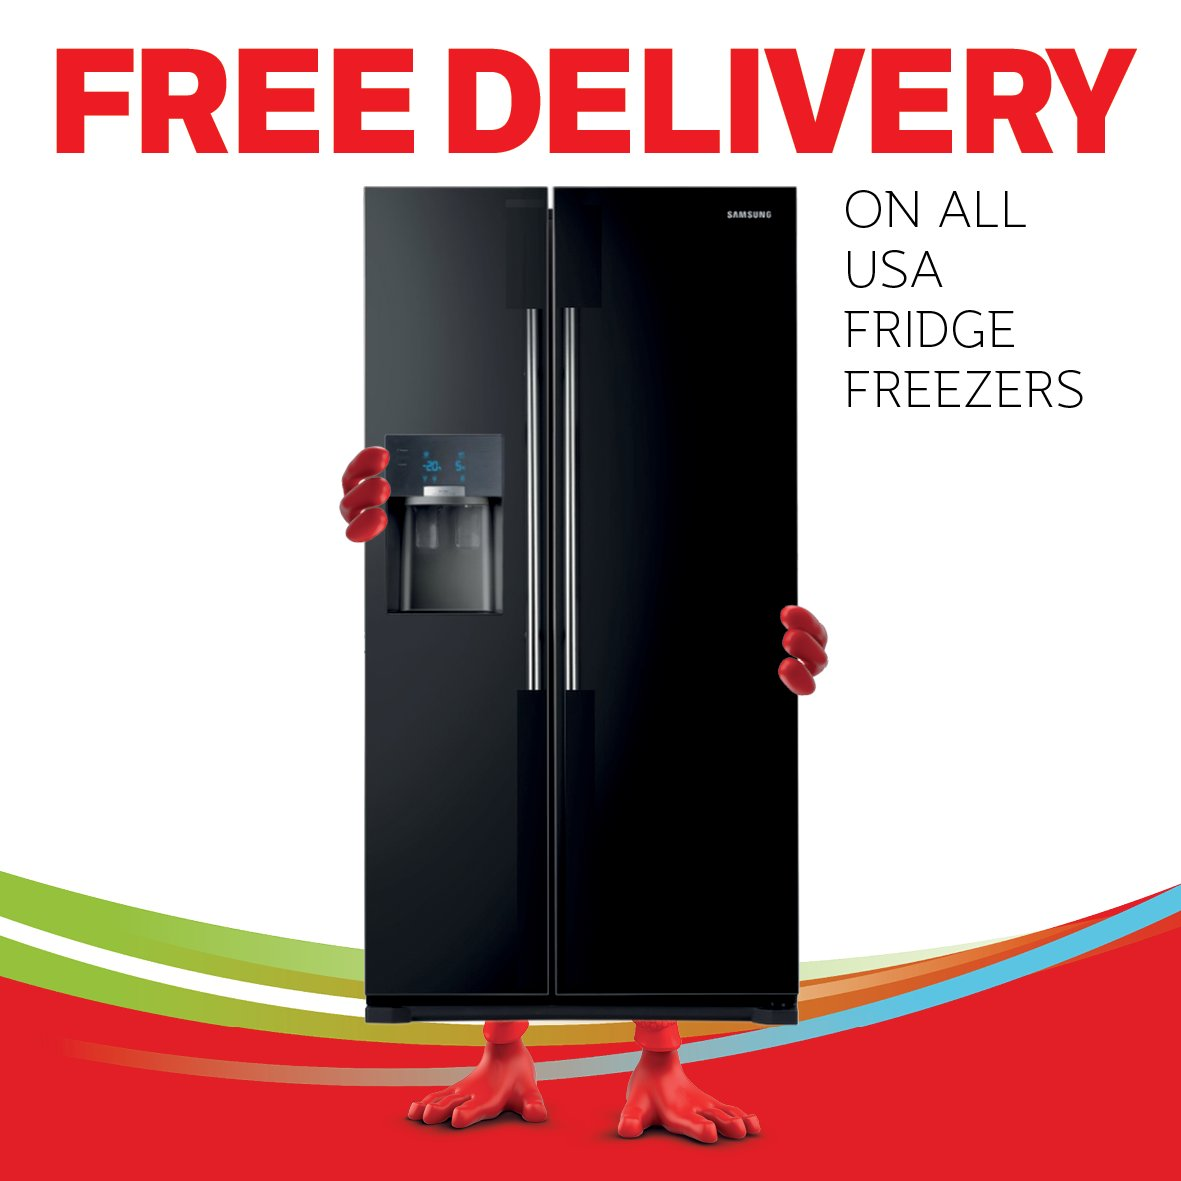 Free delivery on all USA fridge freezers this weekend! check it out here; https://t.co/zr6iKSq4kO #SummerSale https://t.co/RHdzPRXhpN